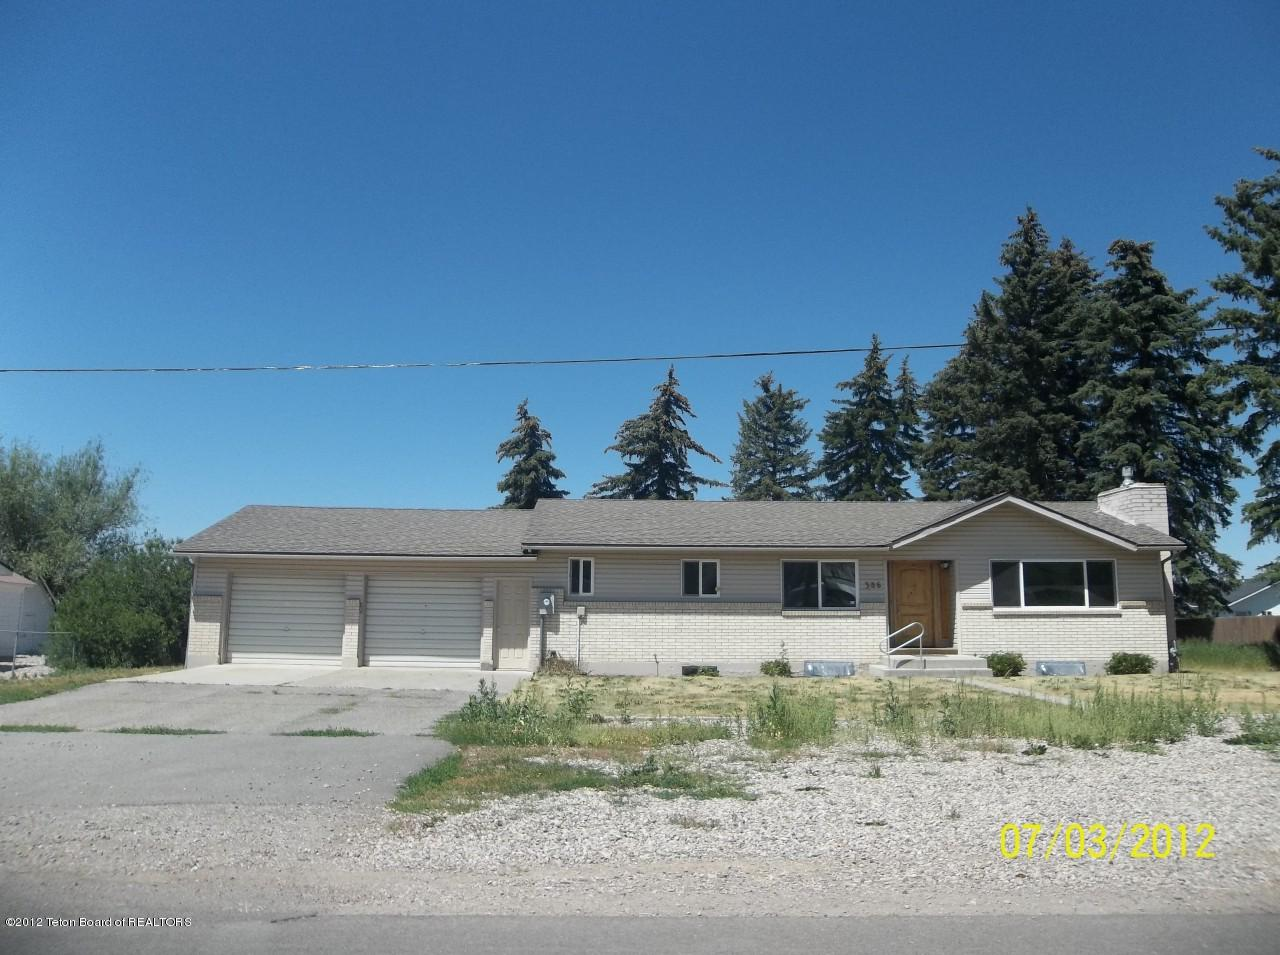 Afton Wyoming Wy Fsbo Homes For Sale Afton By Owner